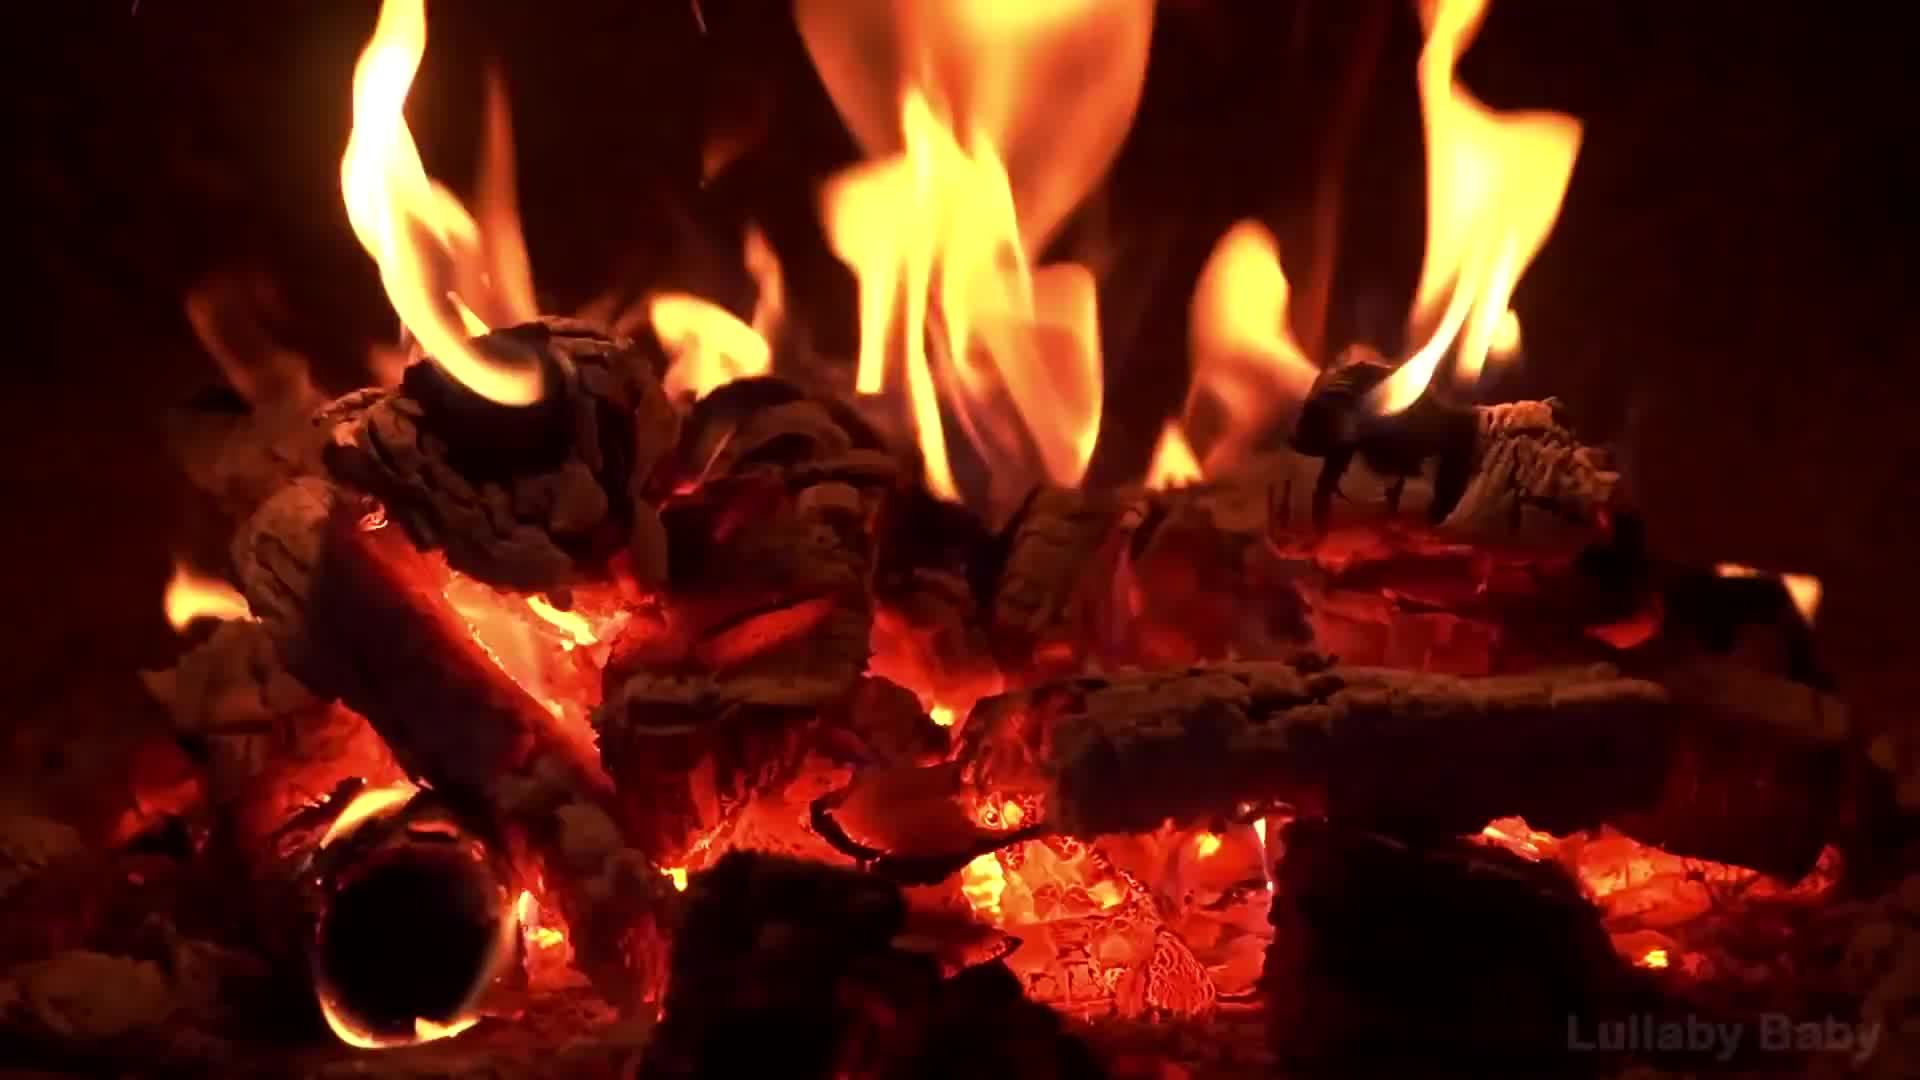 cold, fire, fireplace, heat, hot, perfect loop, perfectl, temperature, youtube, Fire | A 5 second GIF gif from an 8 hour YouTube video GIFs